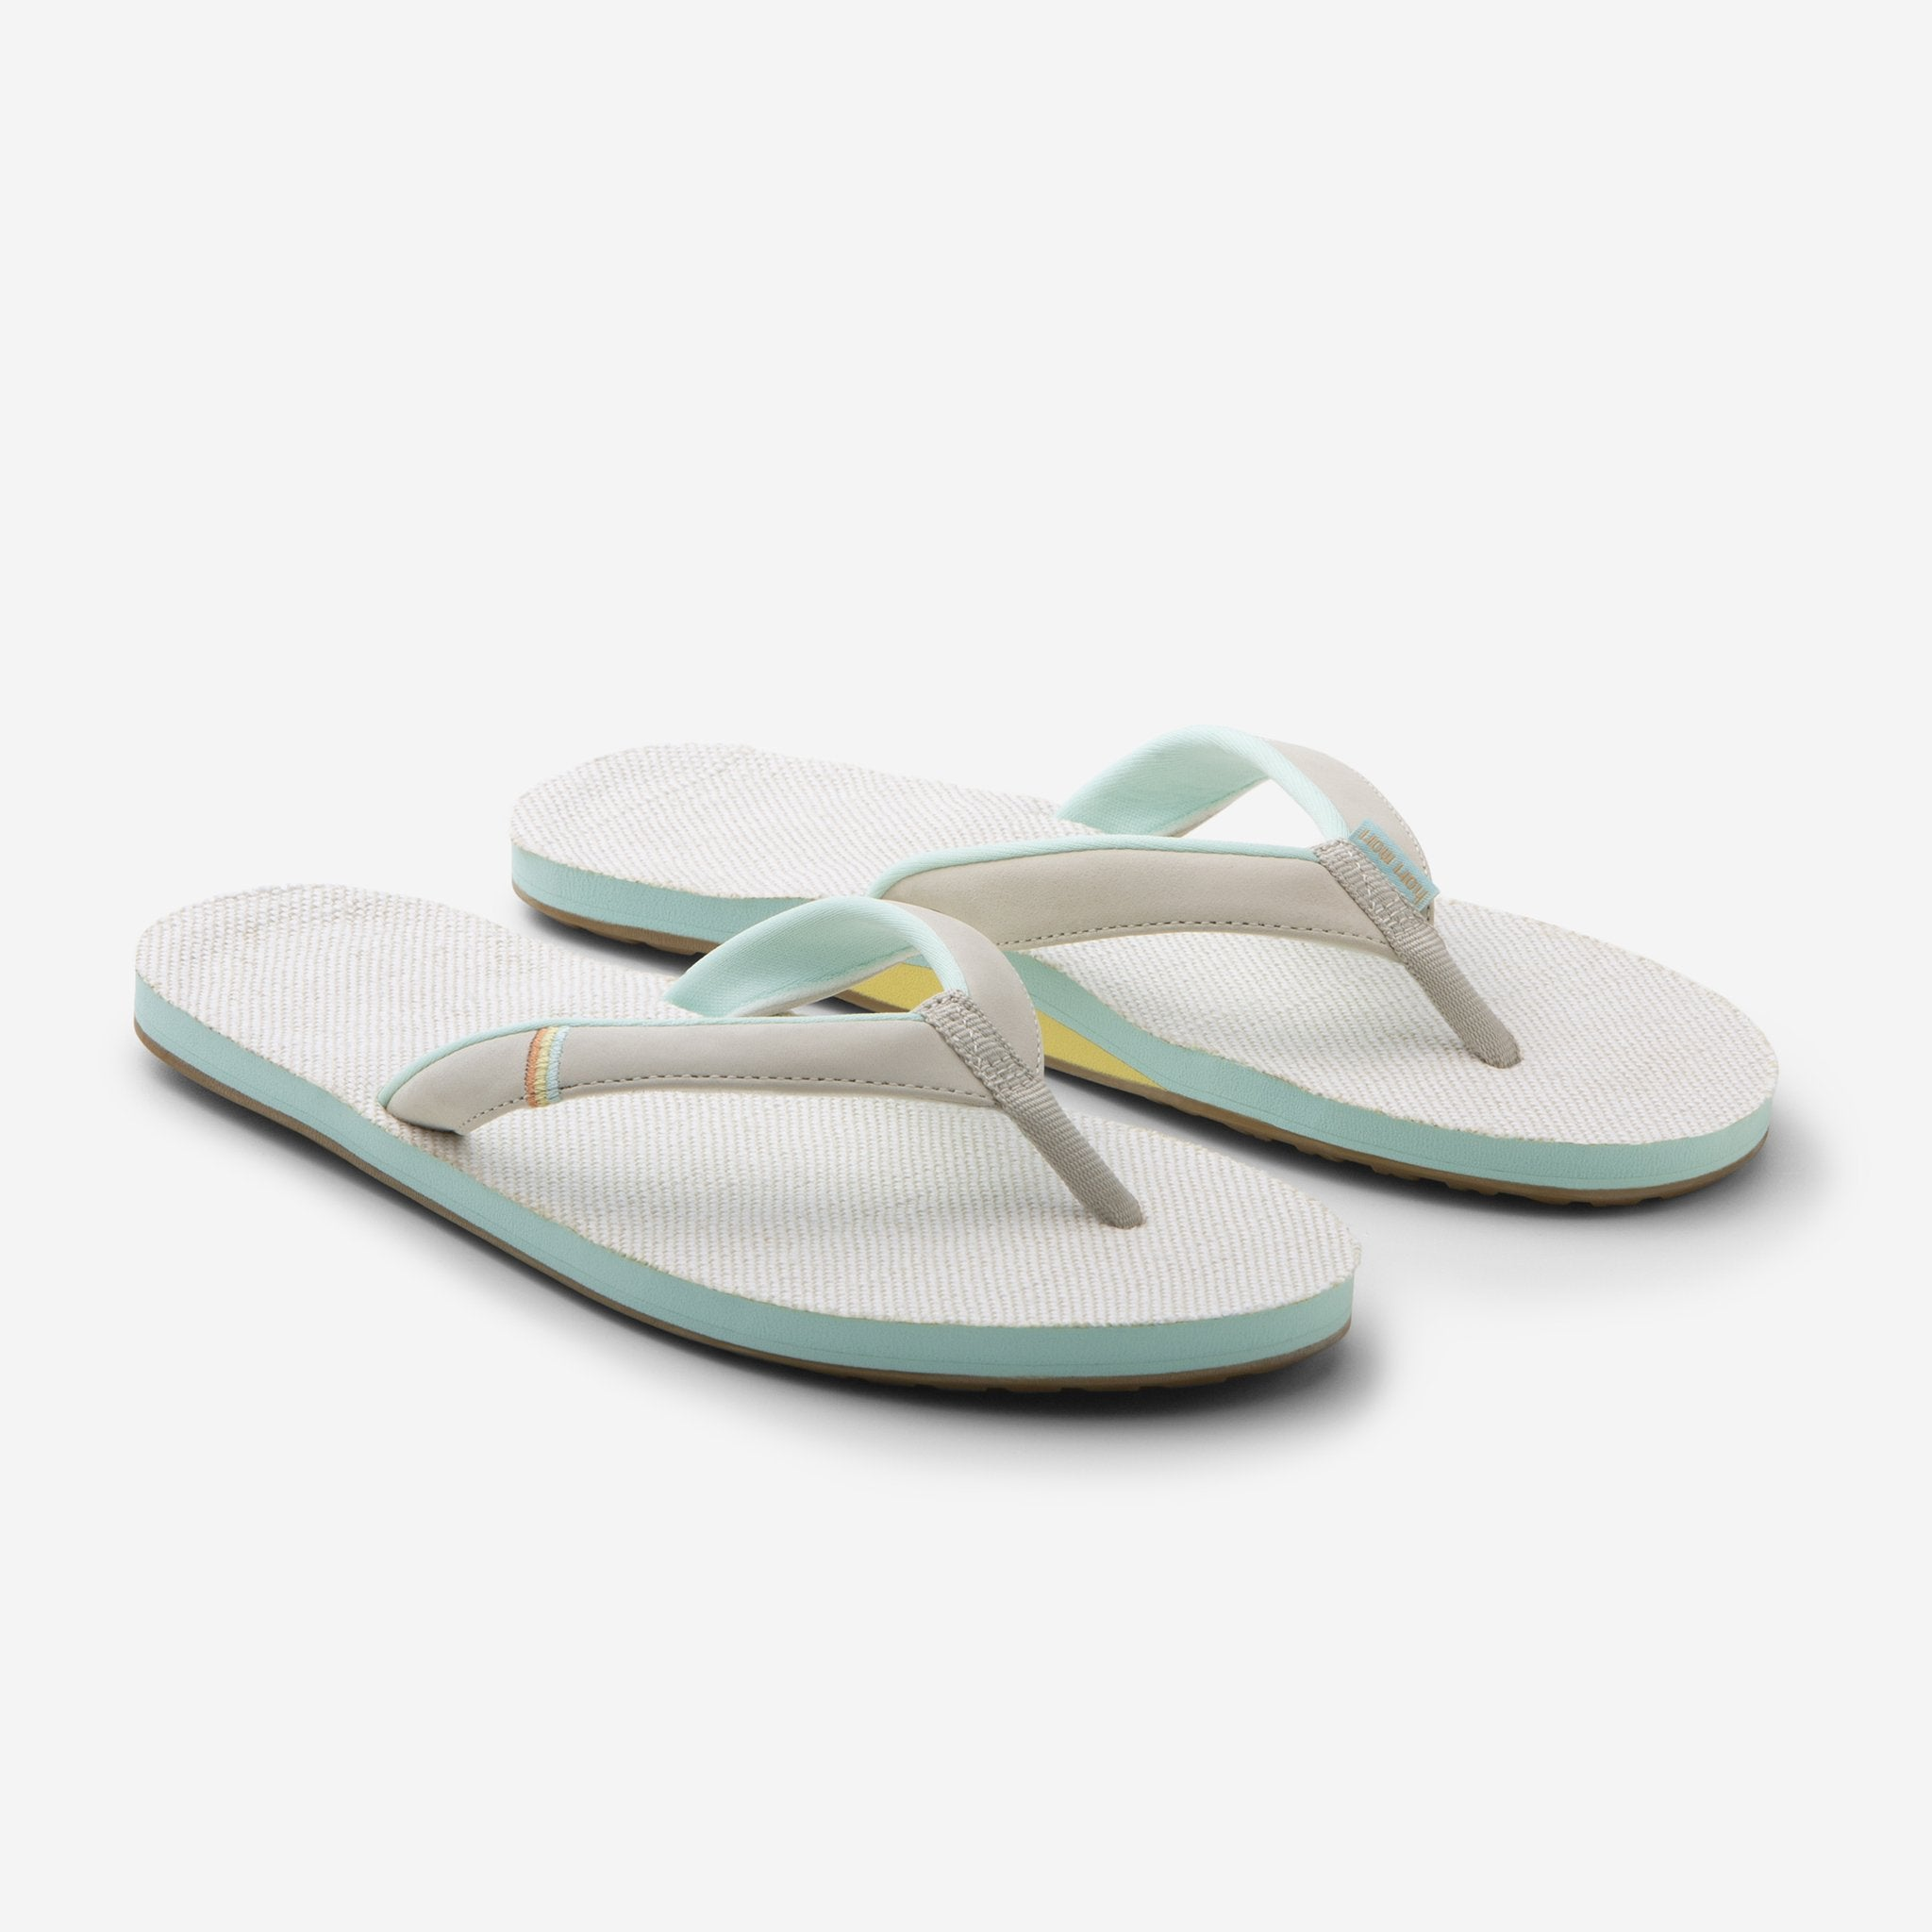 Women Addidas Shoes Slides Slip On Flip Flops Sandals Floral 7 Relieving Heat And Thirst. Sandals Women's Shoes